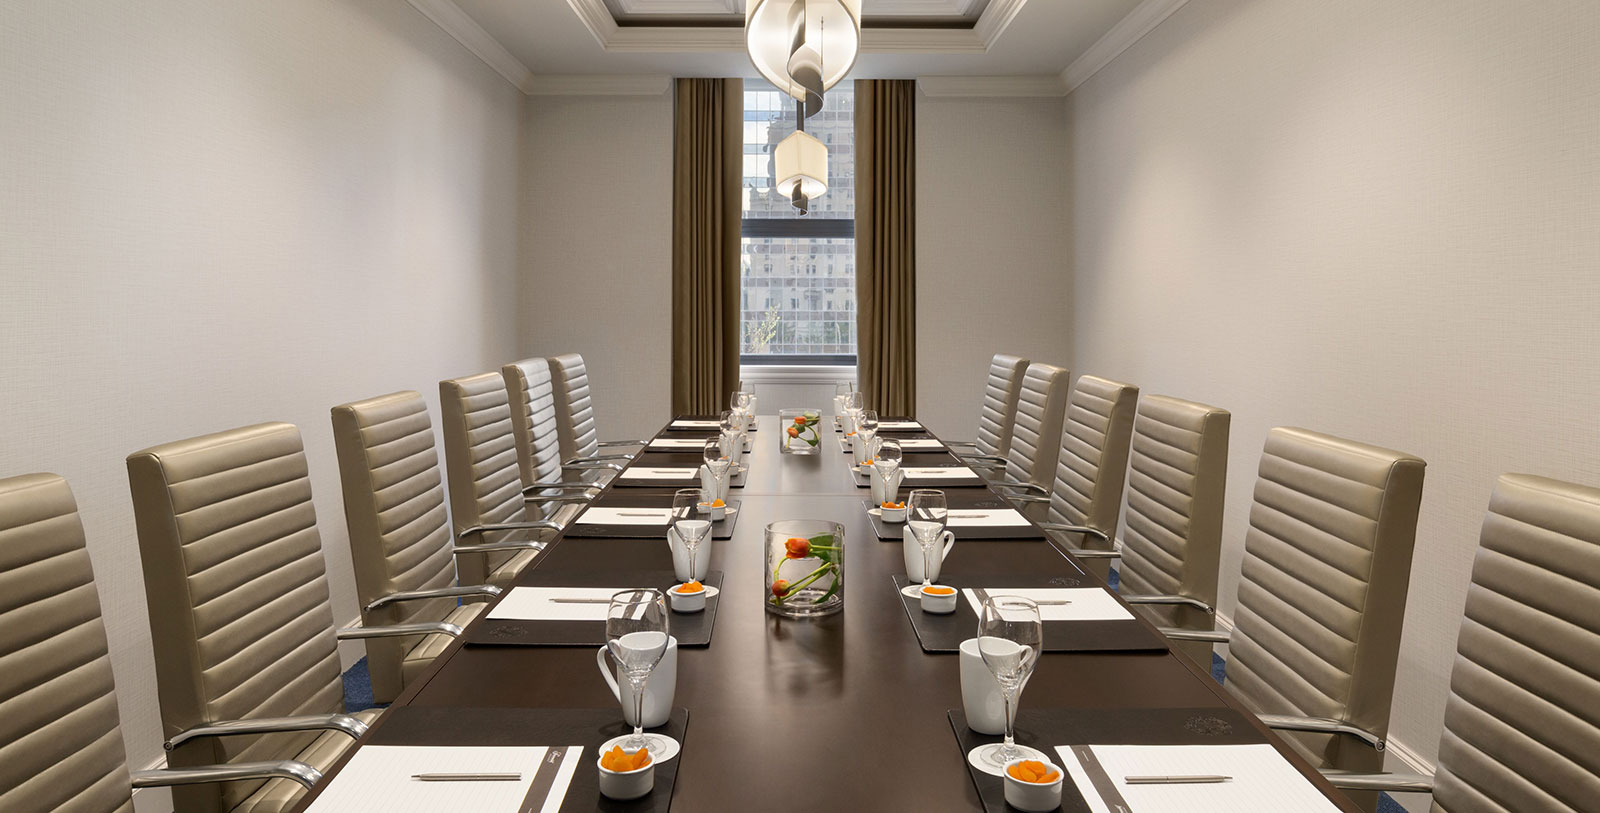 Image of Bowen Island Boardroom, Fairmont Hotel Vancouver, 1939, Member of Historic Hotels Worldwide, in Vancouver, Canada, Request For Proposal